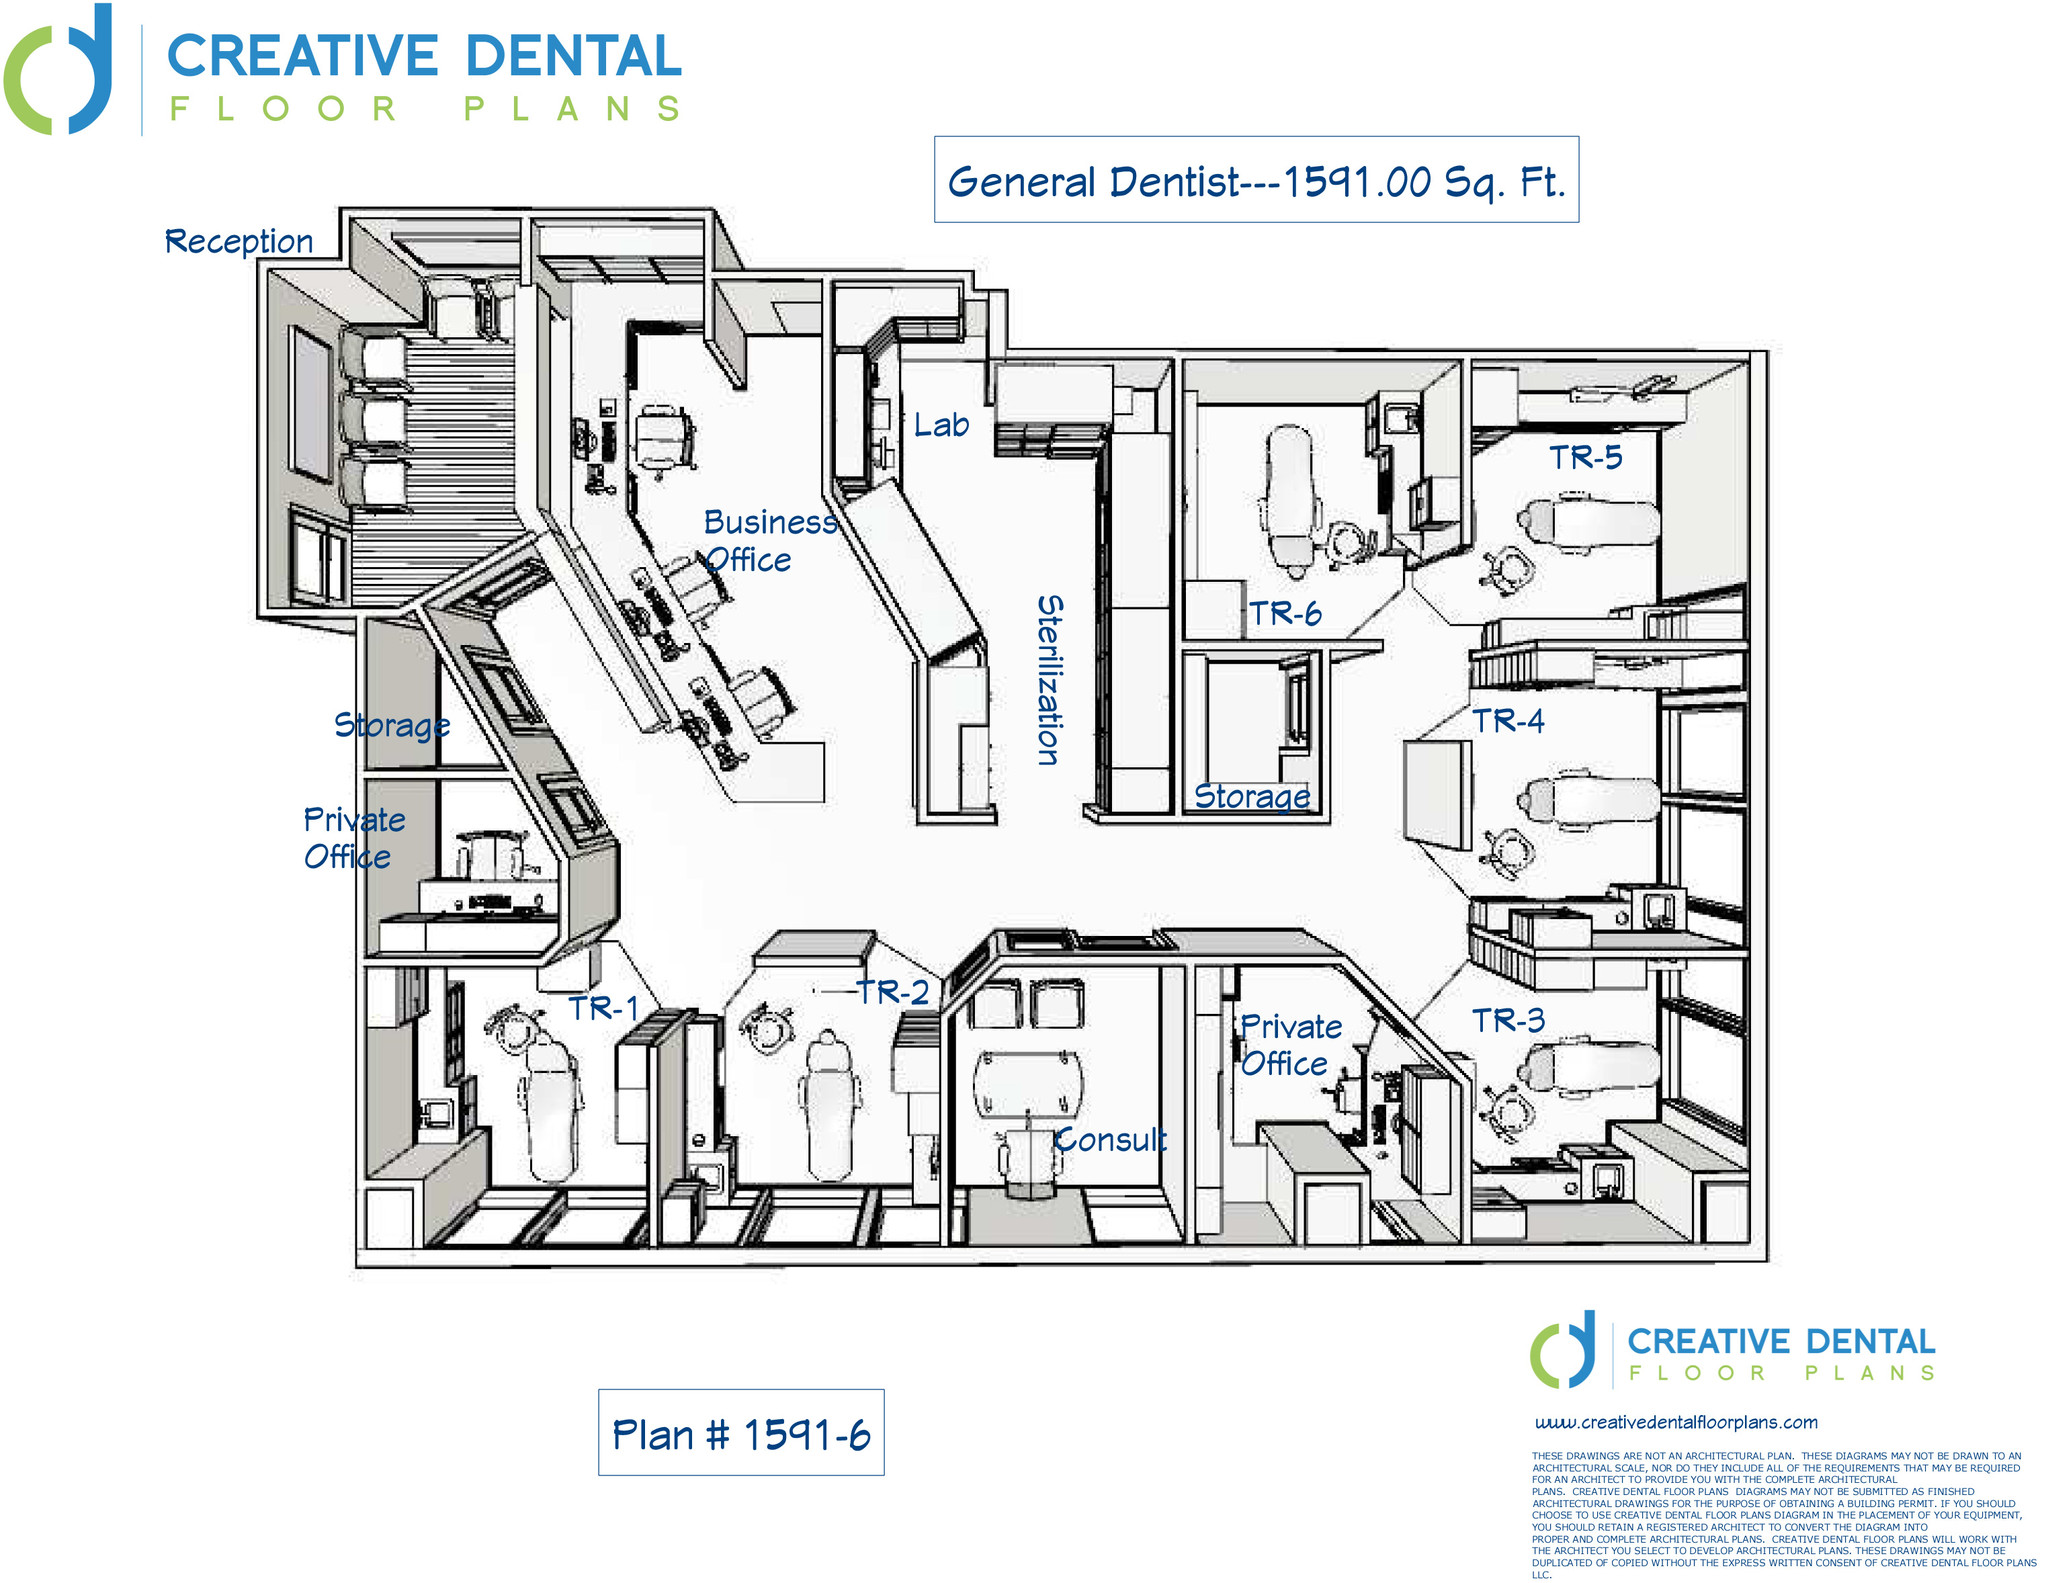 Creative dental floor plans strip mall floor plans for Office plan design